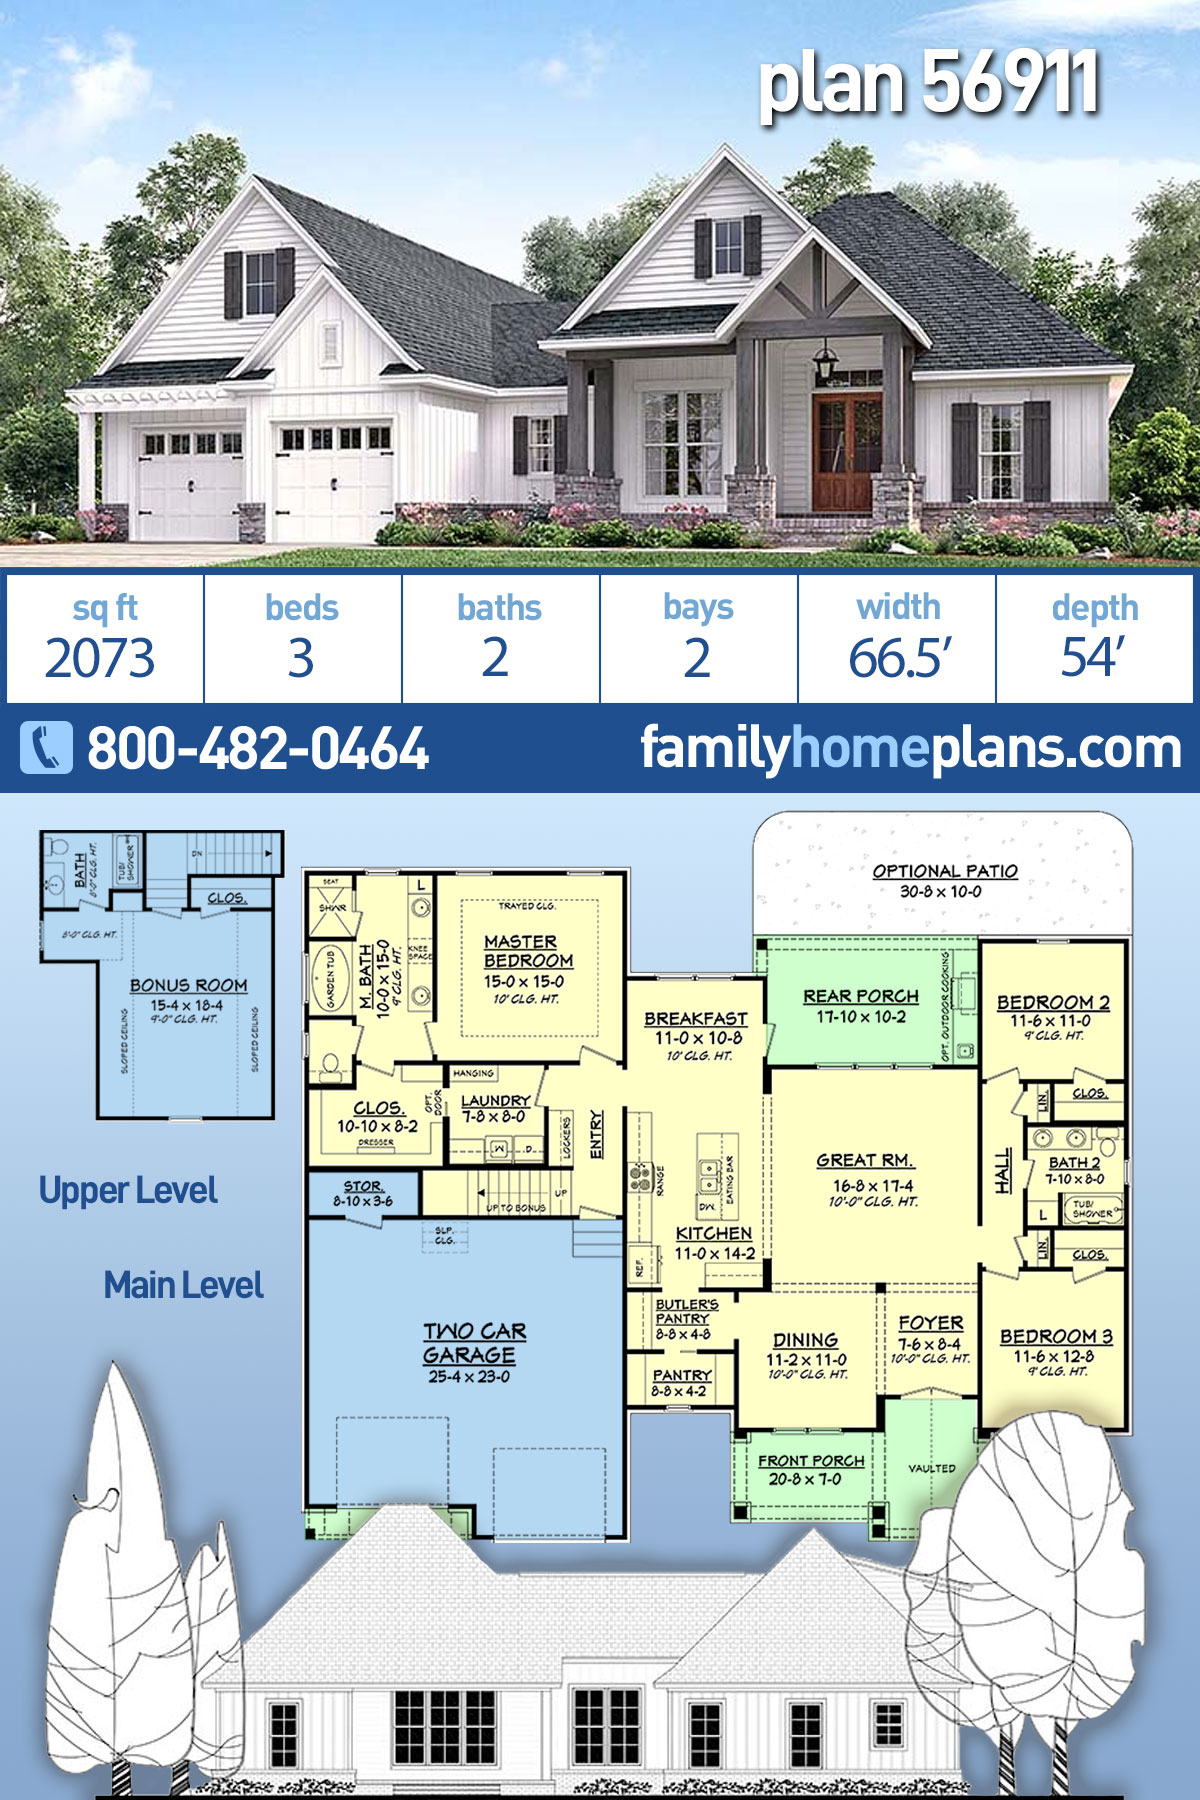 Country, Craftsman, Southern, Traditional House Plan 56911 with 3 Beds, 2 Baths, 2 Car Garage